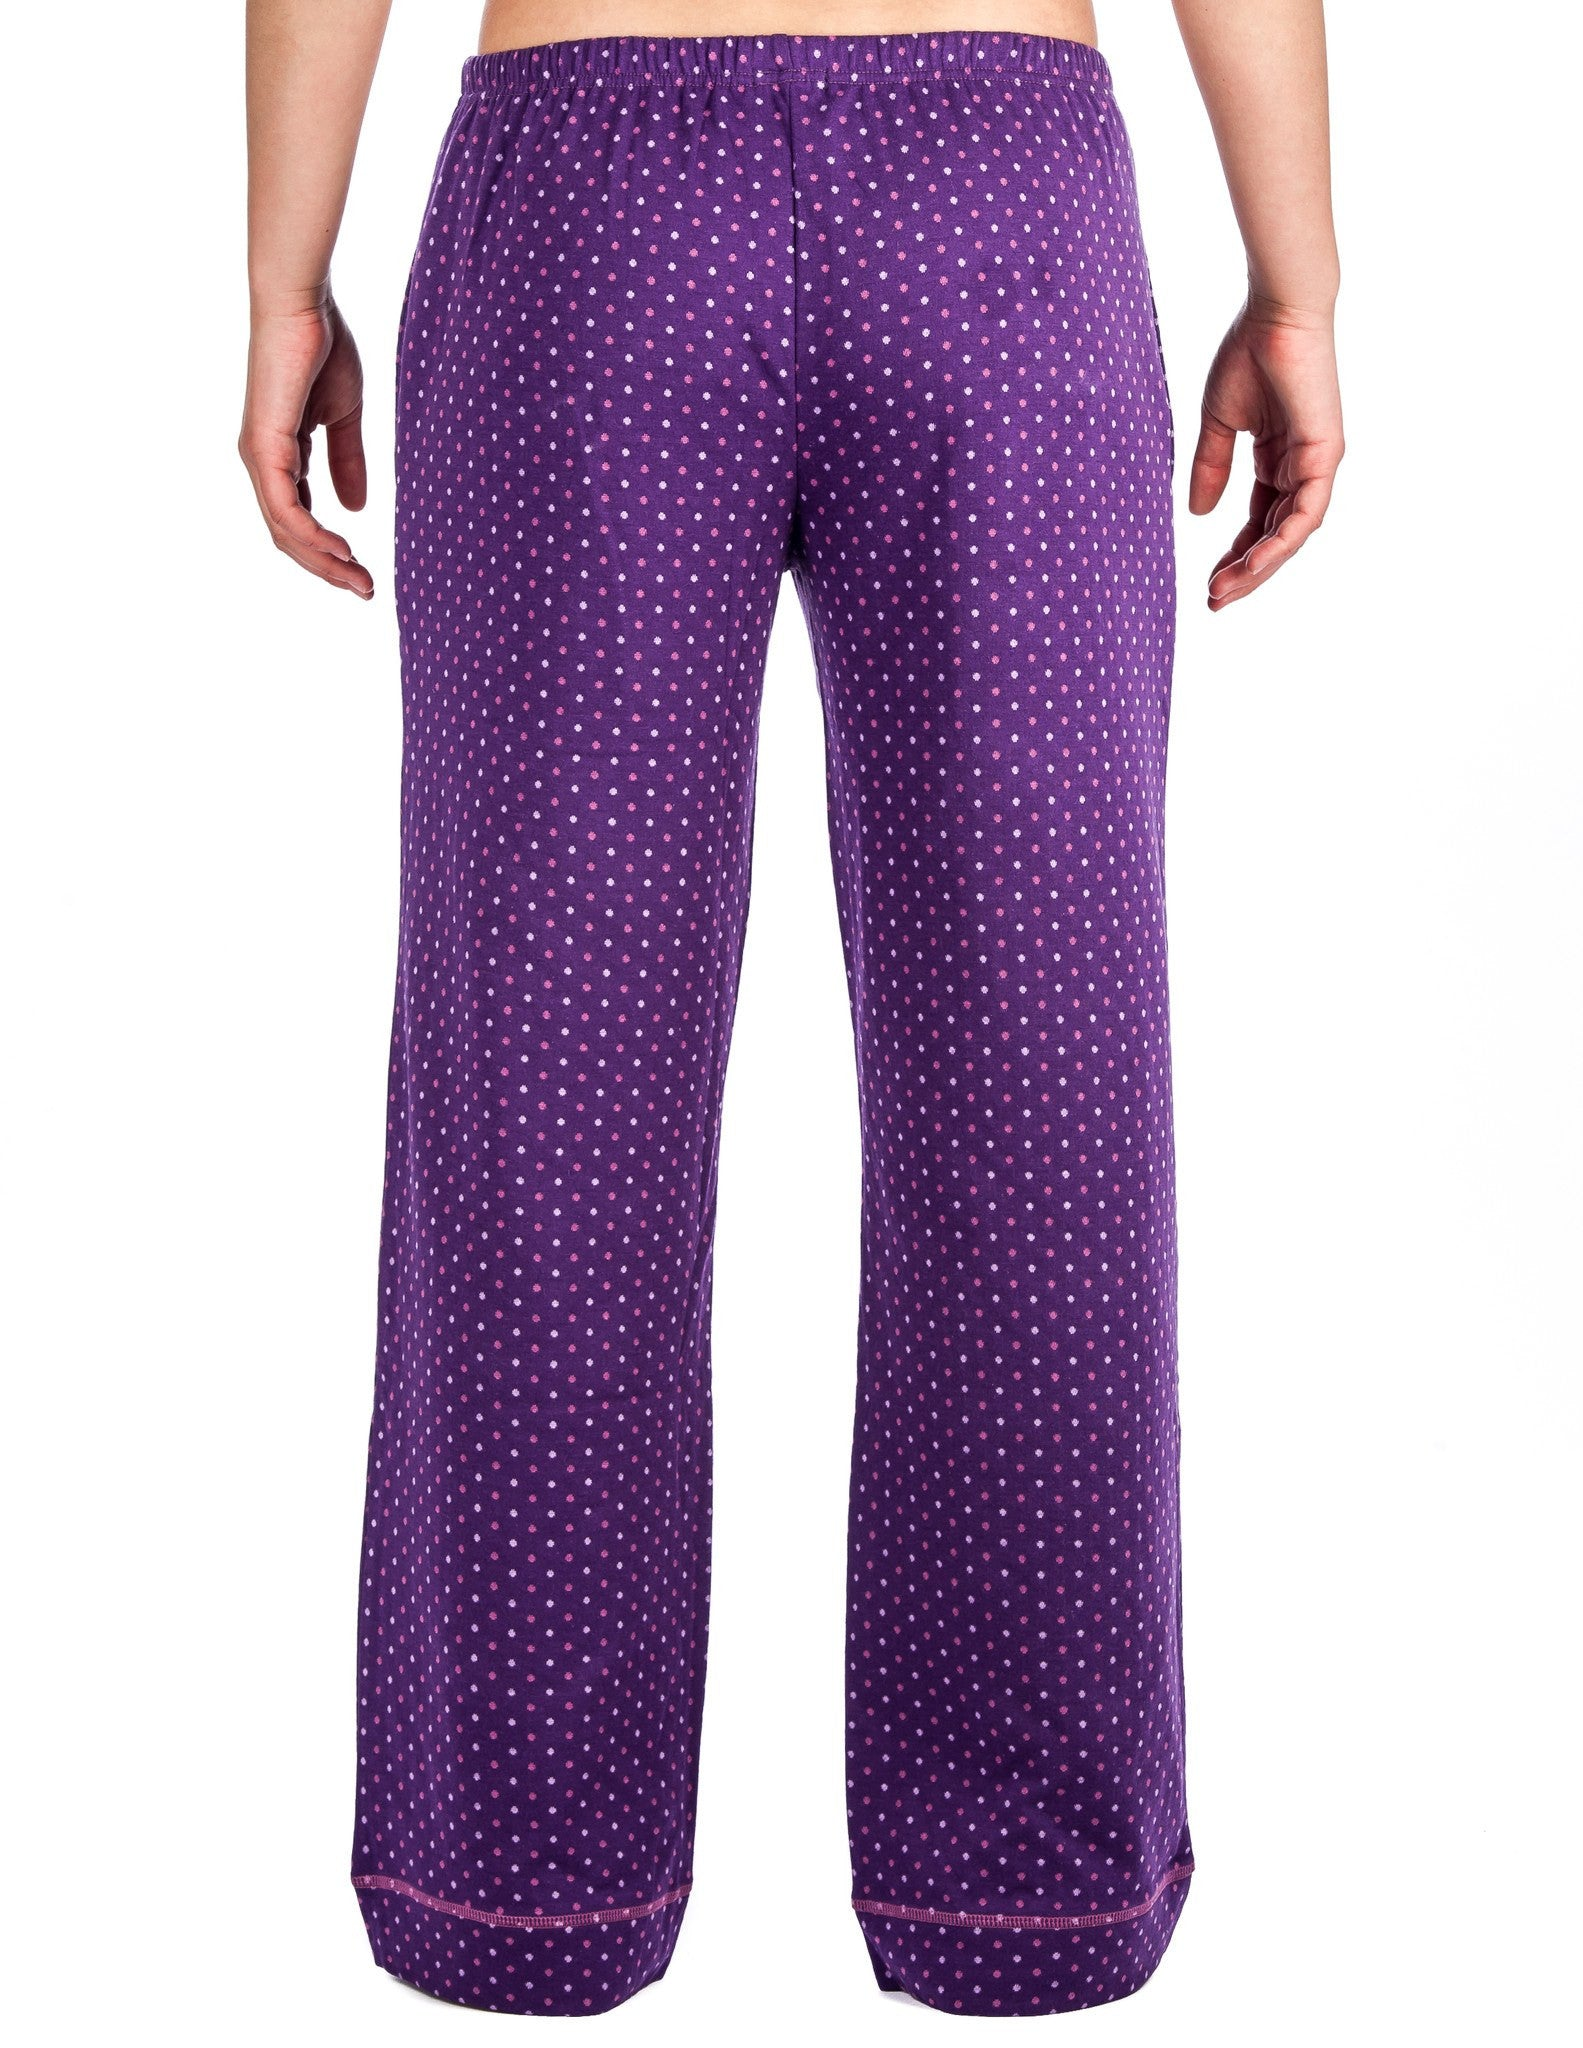 Polka Dots - Purple (Relaxed Fit)